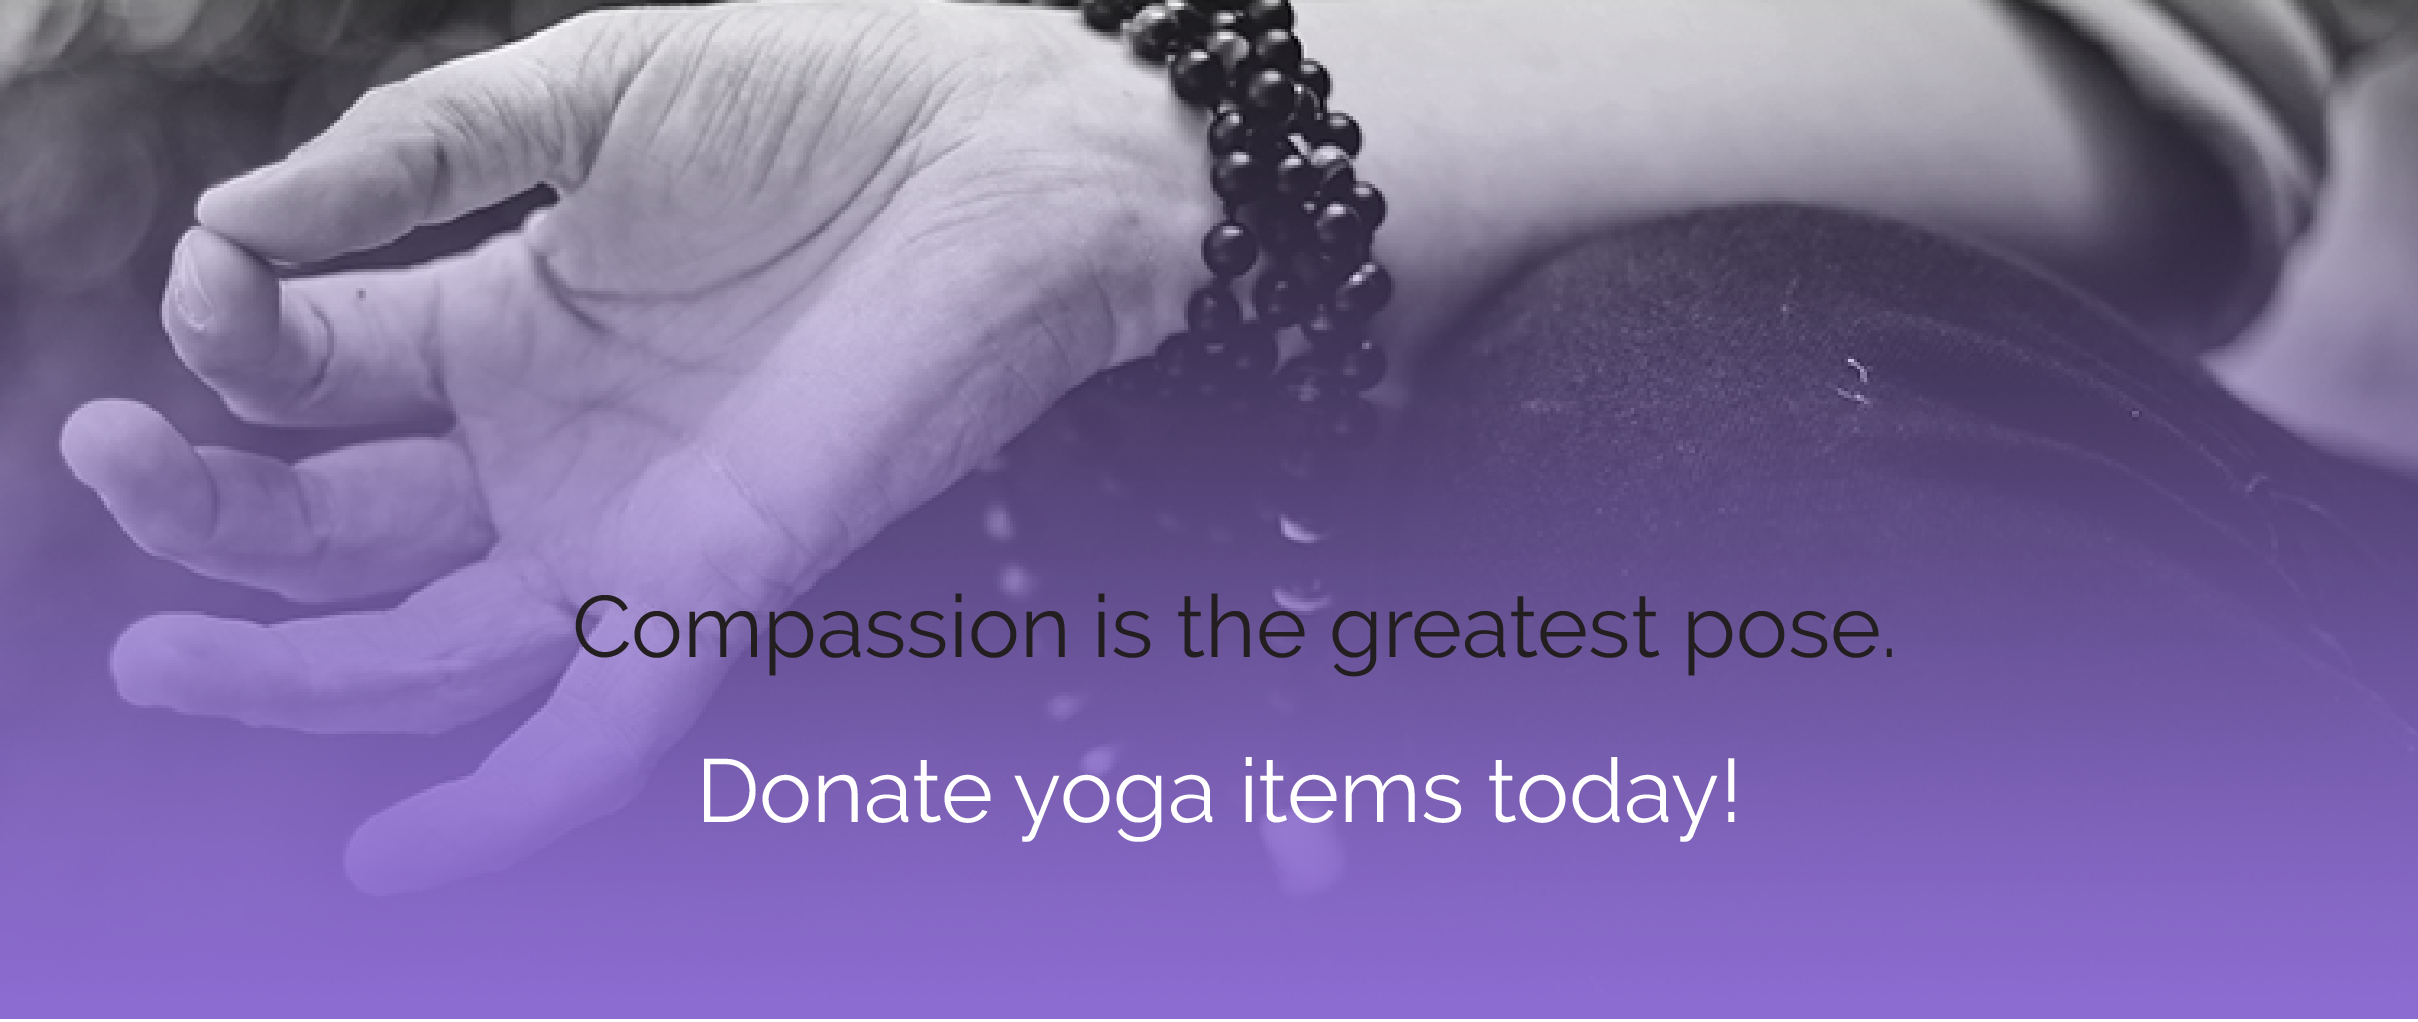 donate yoga items